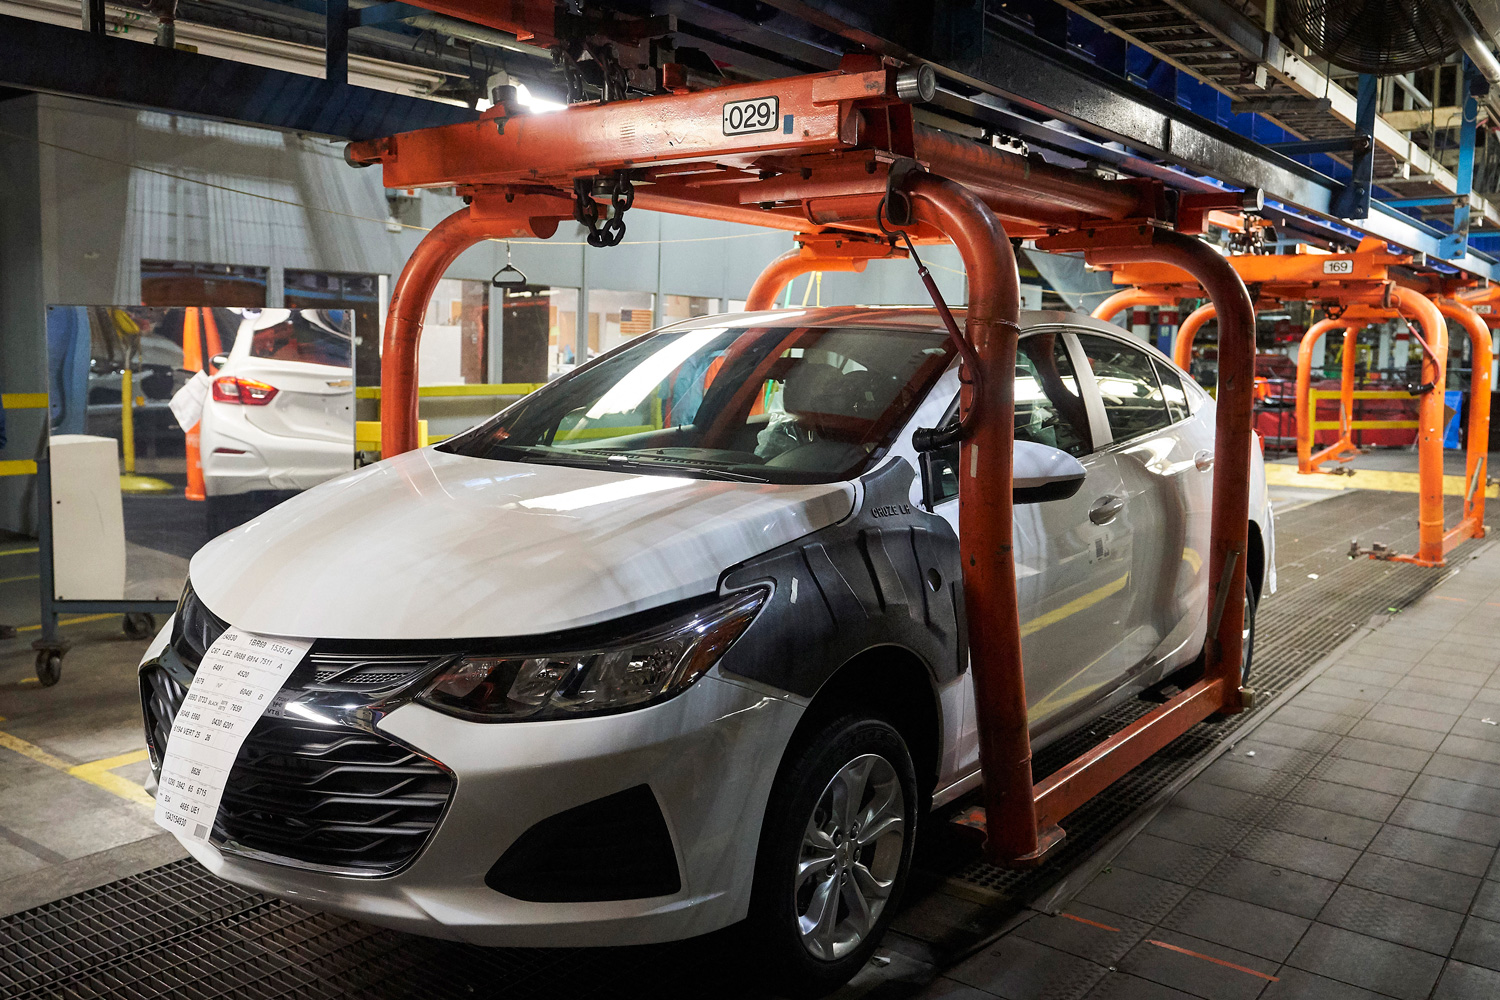 Chevy Cruze production